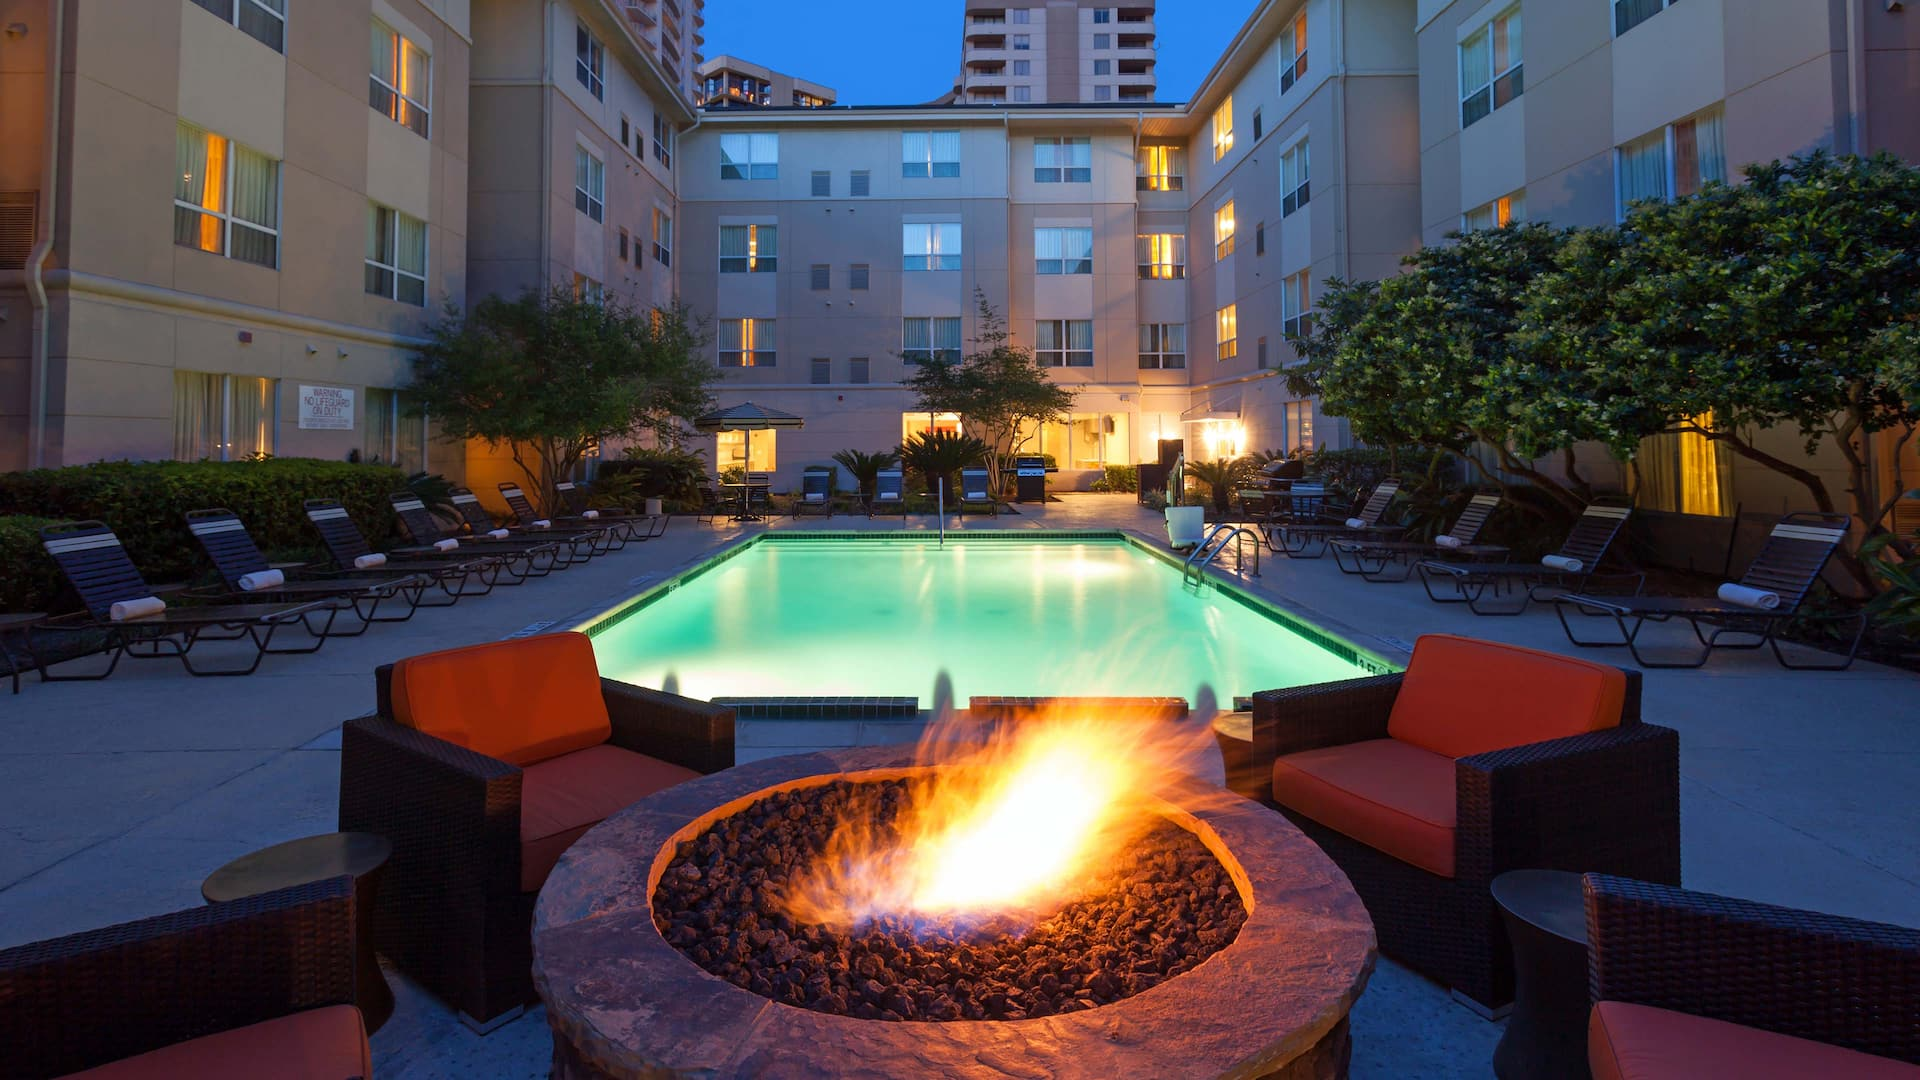 Fire Pit  and Evening Pool